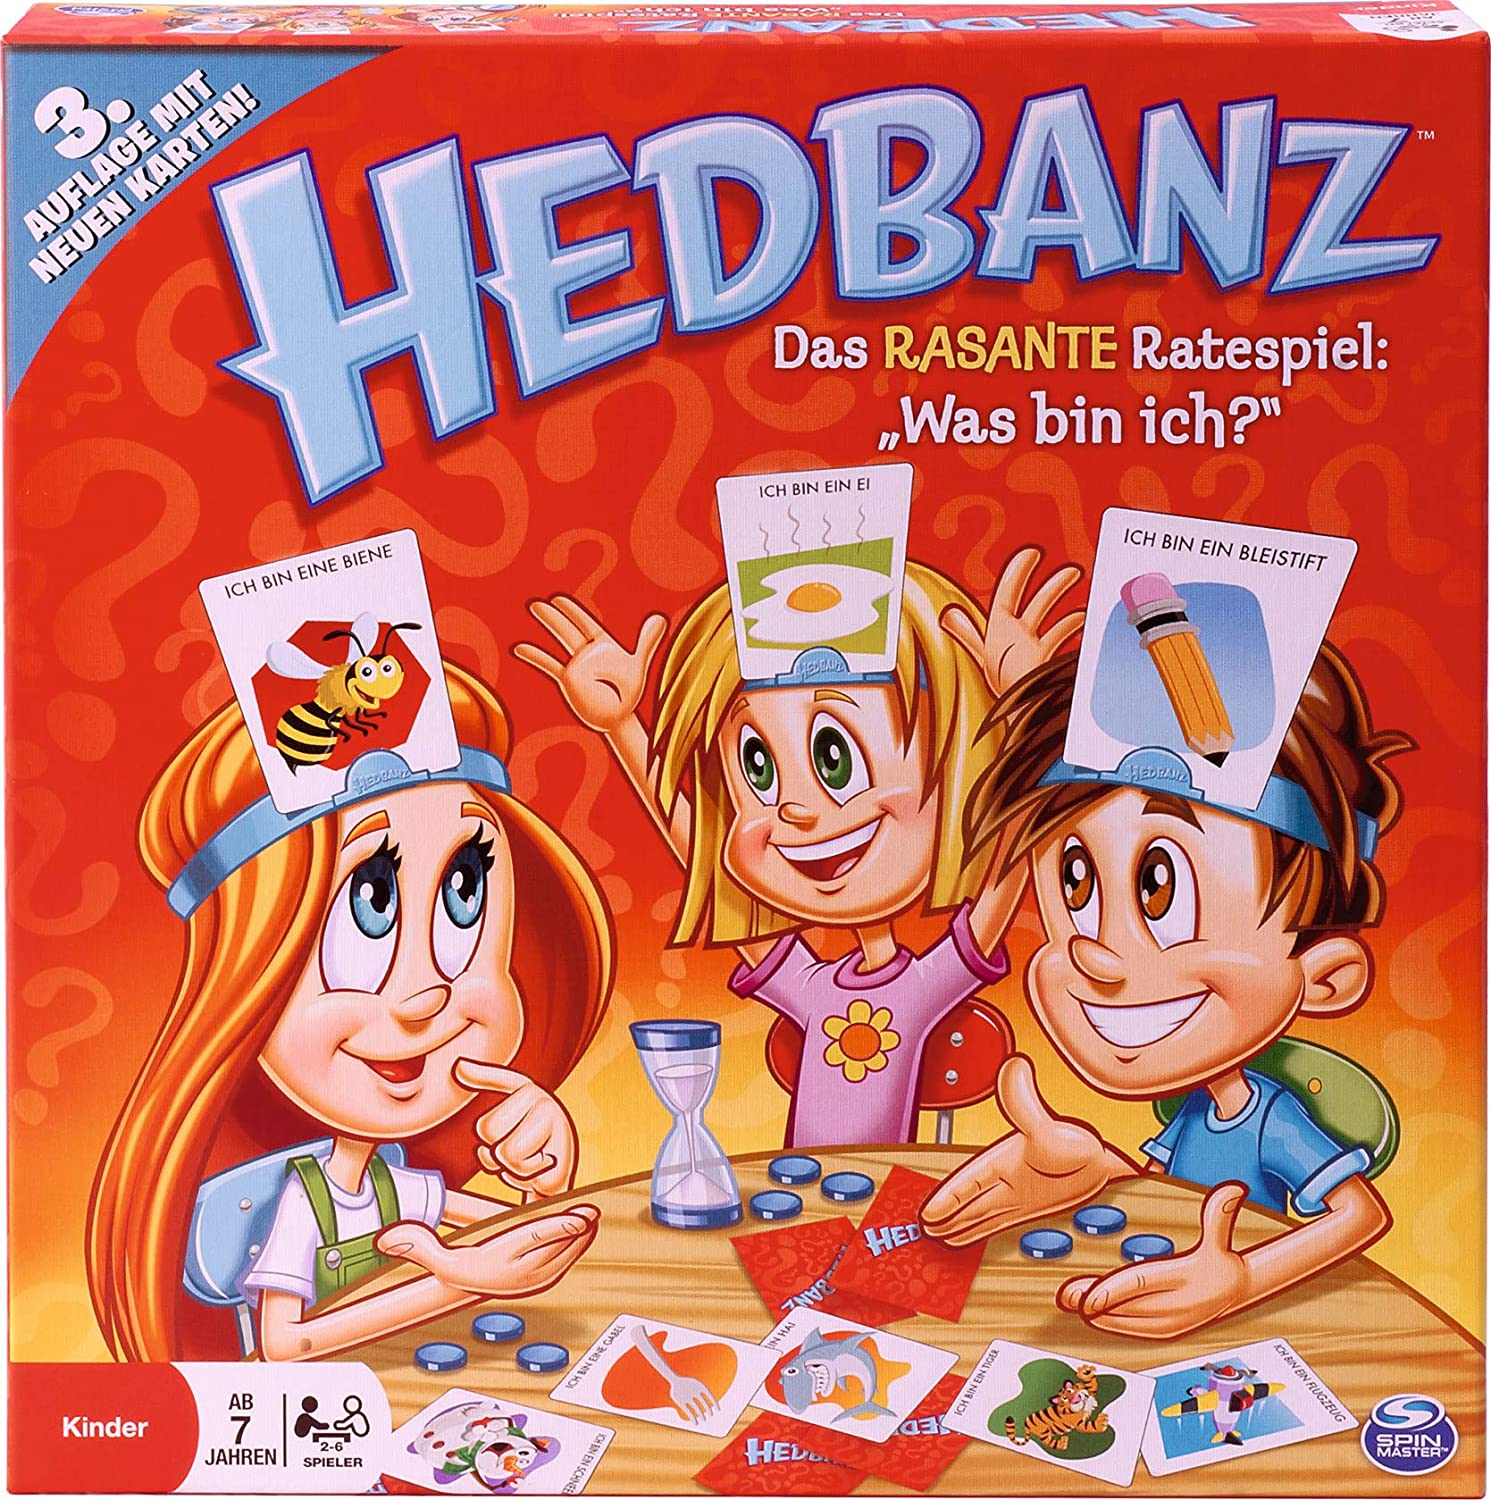 Cardinal Games Be super welcome 6019225 Hedbanz OFFicial mail order Game Board Multicoloured Kids